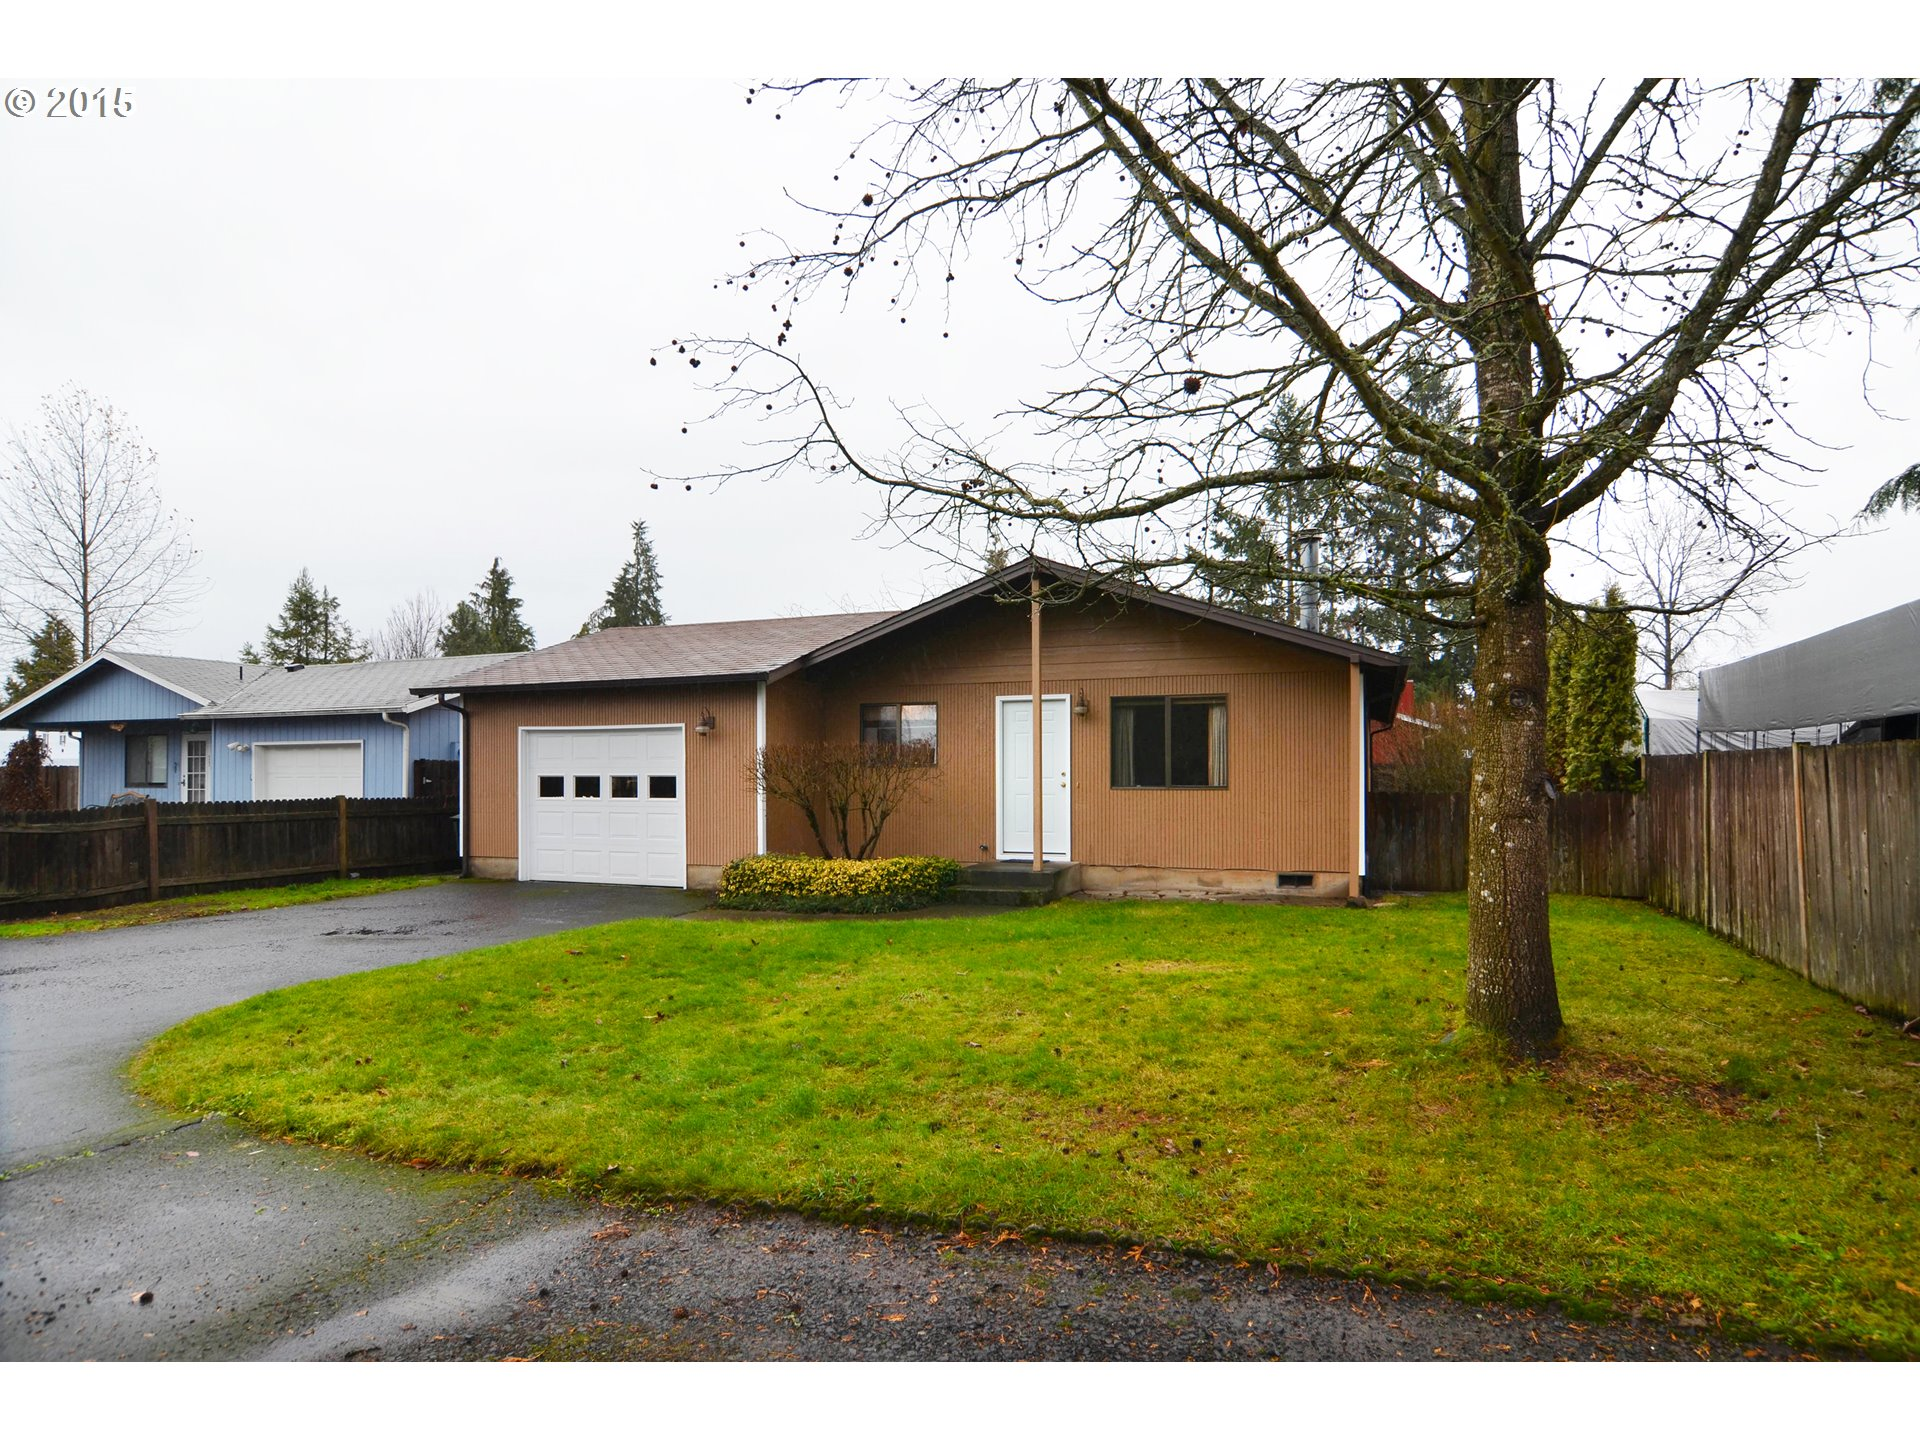 4501 Aster St, Springfield, OR